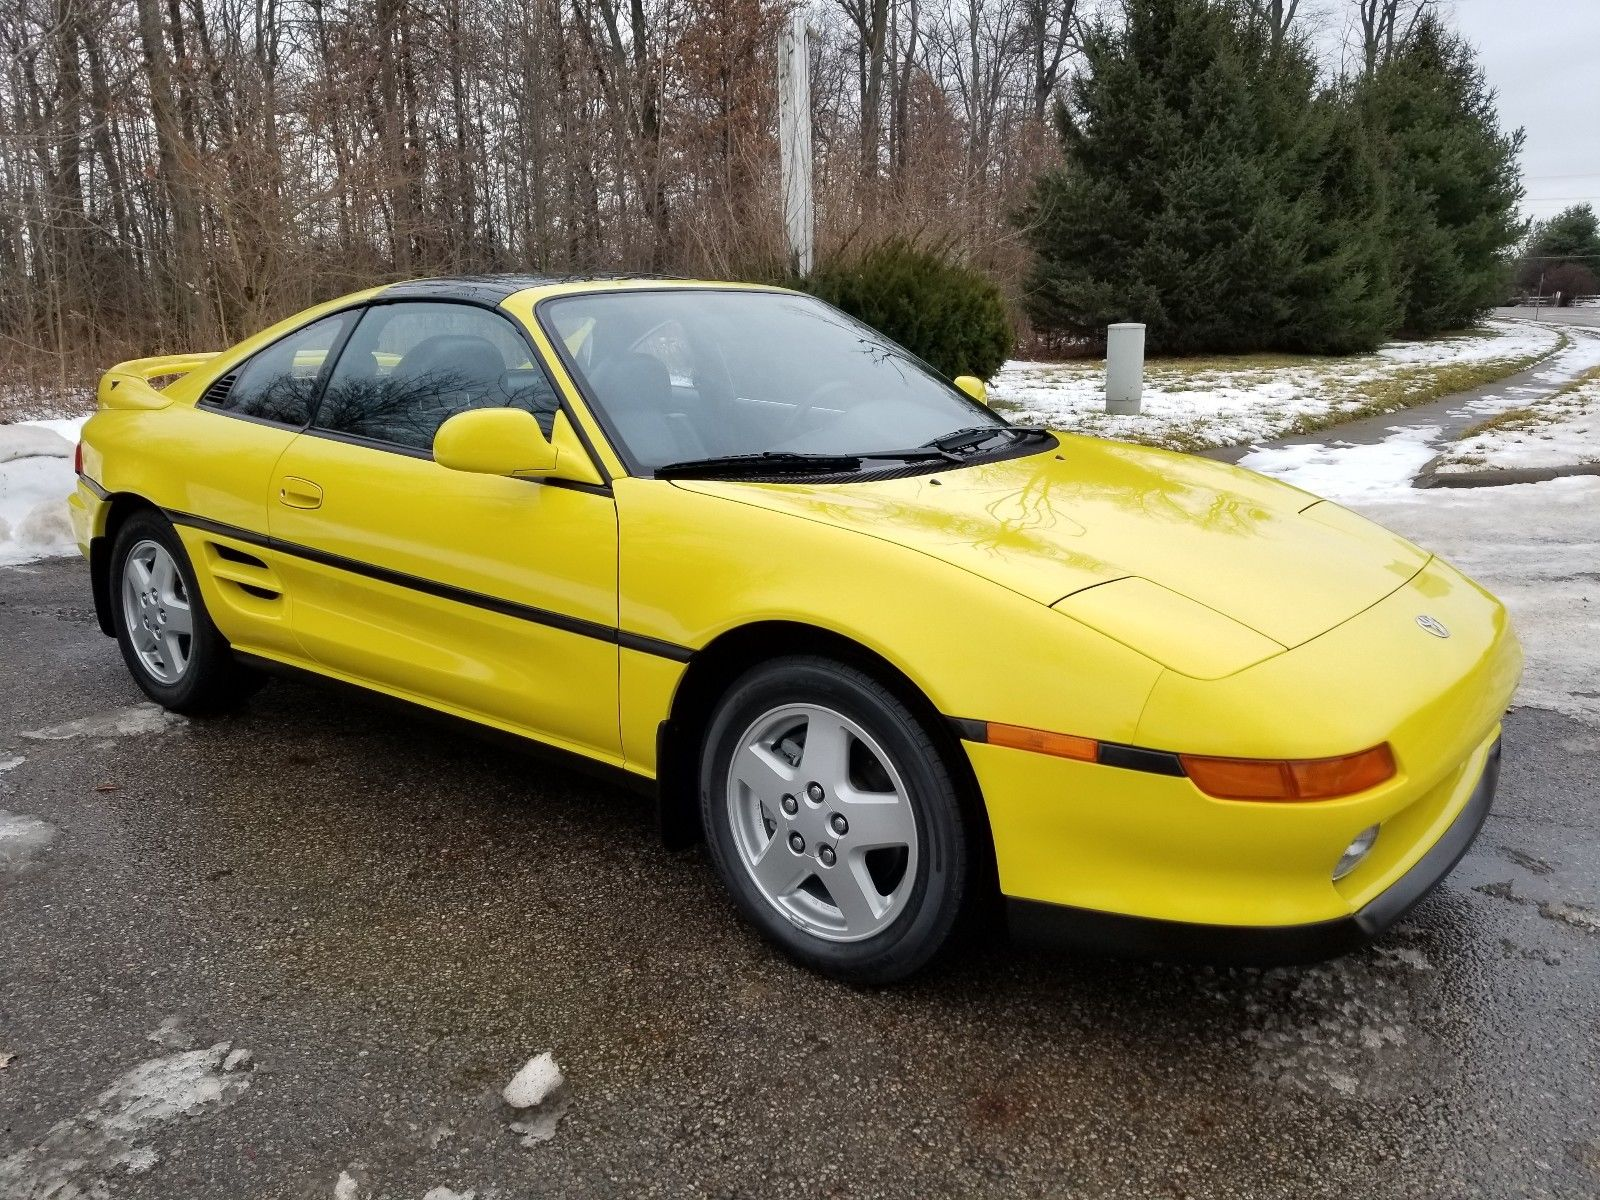 Superieur If You Wanted A Brand New Second Generation Toyota MR2 Turbo Back In The  Day But Foolishly Did Not Buy One, This Could Be Your One Shot At  Redemption.